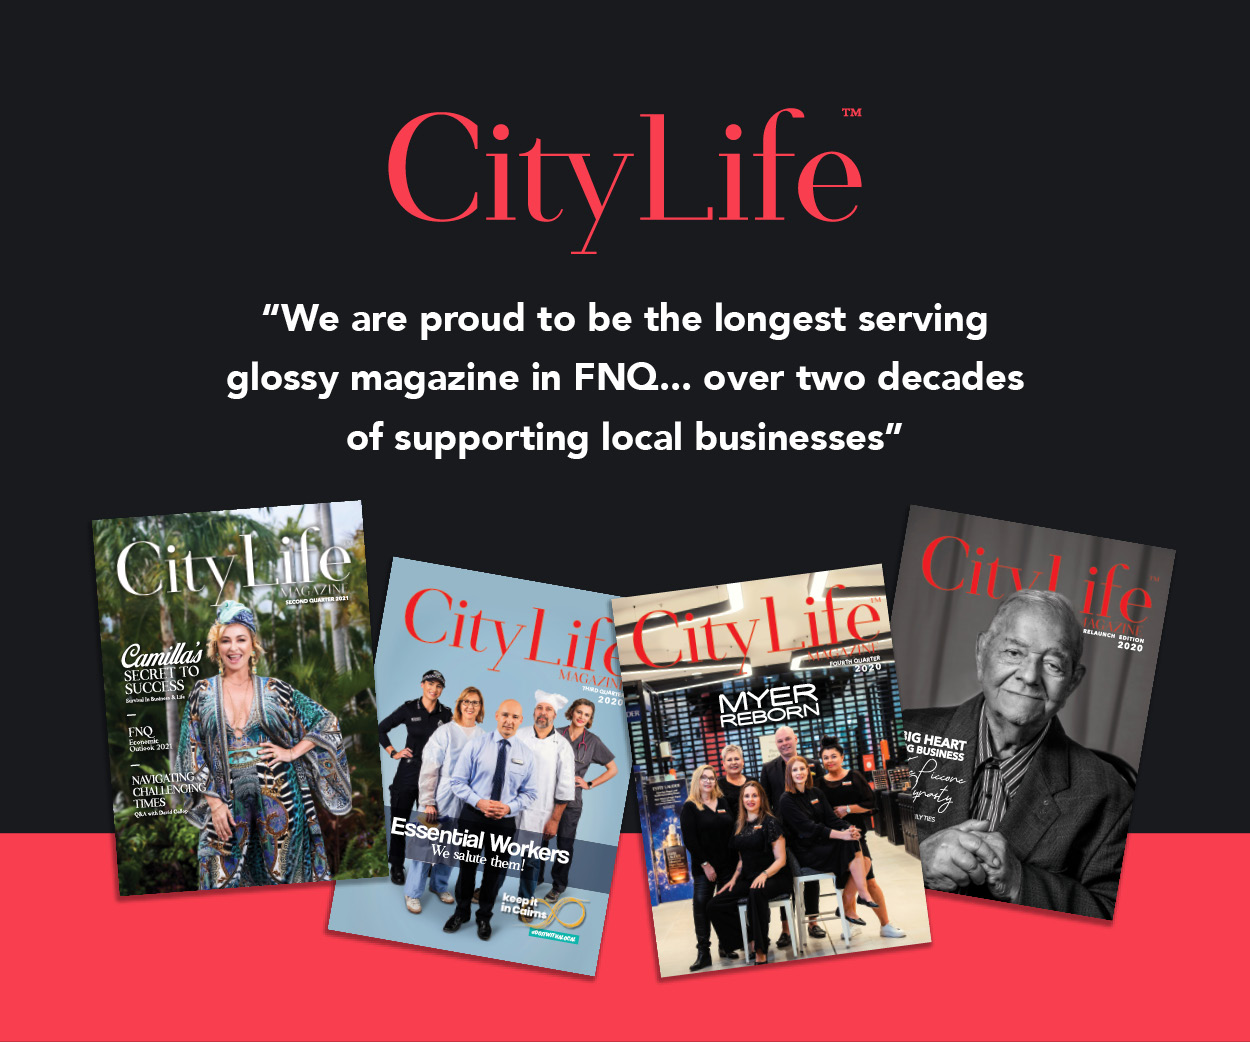 CityLife is the longest serving glossy magazine in FNQ